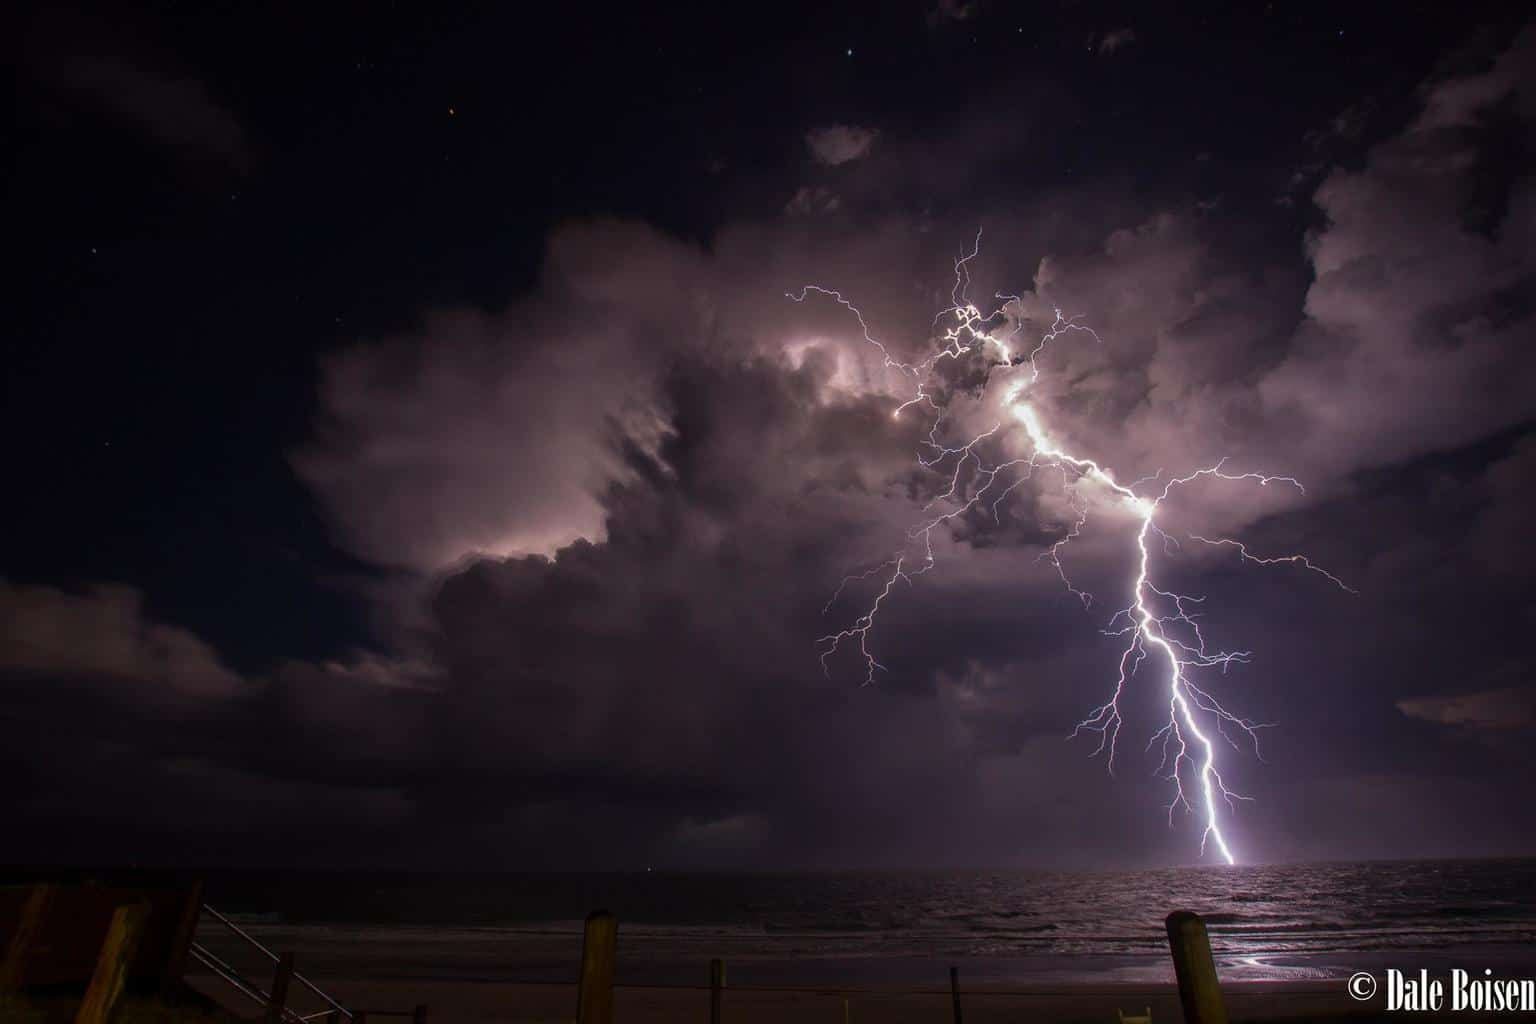 Incredible storm shot from Bribie Island on Monday night, lasted for hours and was the most lightning active storm I have ever seen.